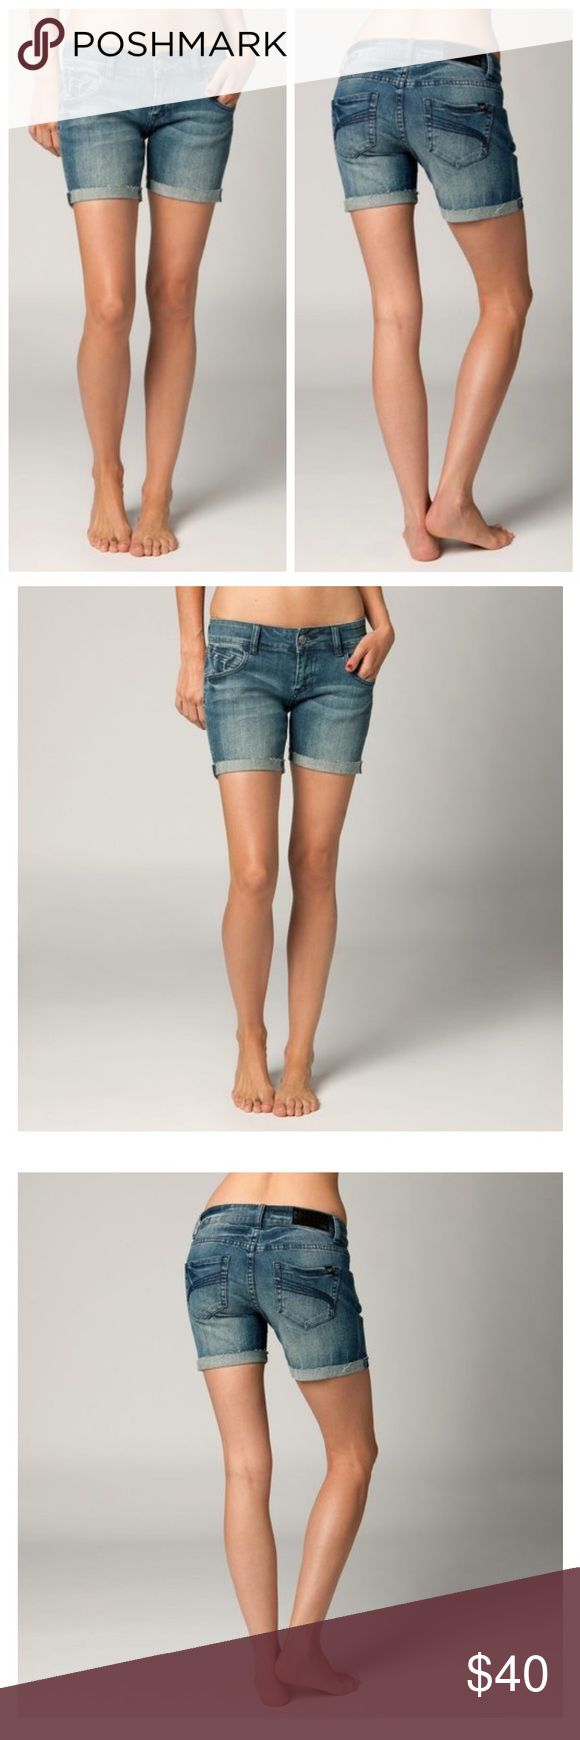 """🆕FOX RACING WOMENS KICKSTART DENIM JEAN SHORTS The Kickstart shorts are the perfect pair of denim if you're looking for a longer fit.  FEATURES  Fox Denim patch with hammered nail heads at back of waistband 5.5"""" inseam 98% cotton/2% Spandex Fox Jeans"""